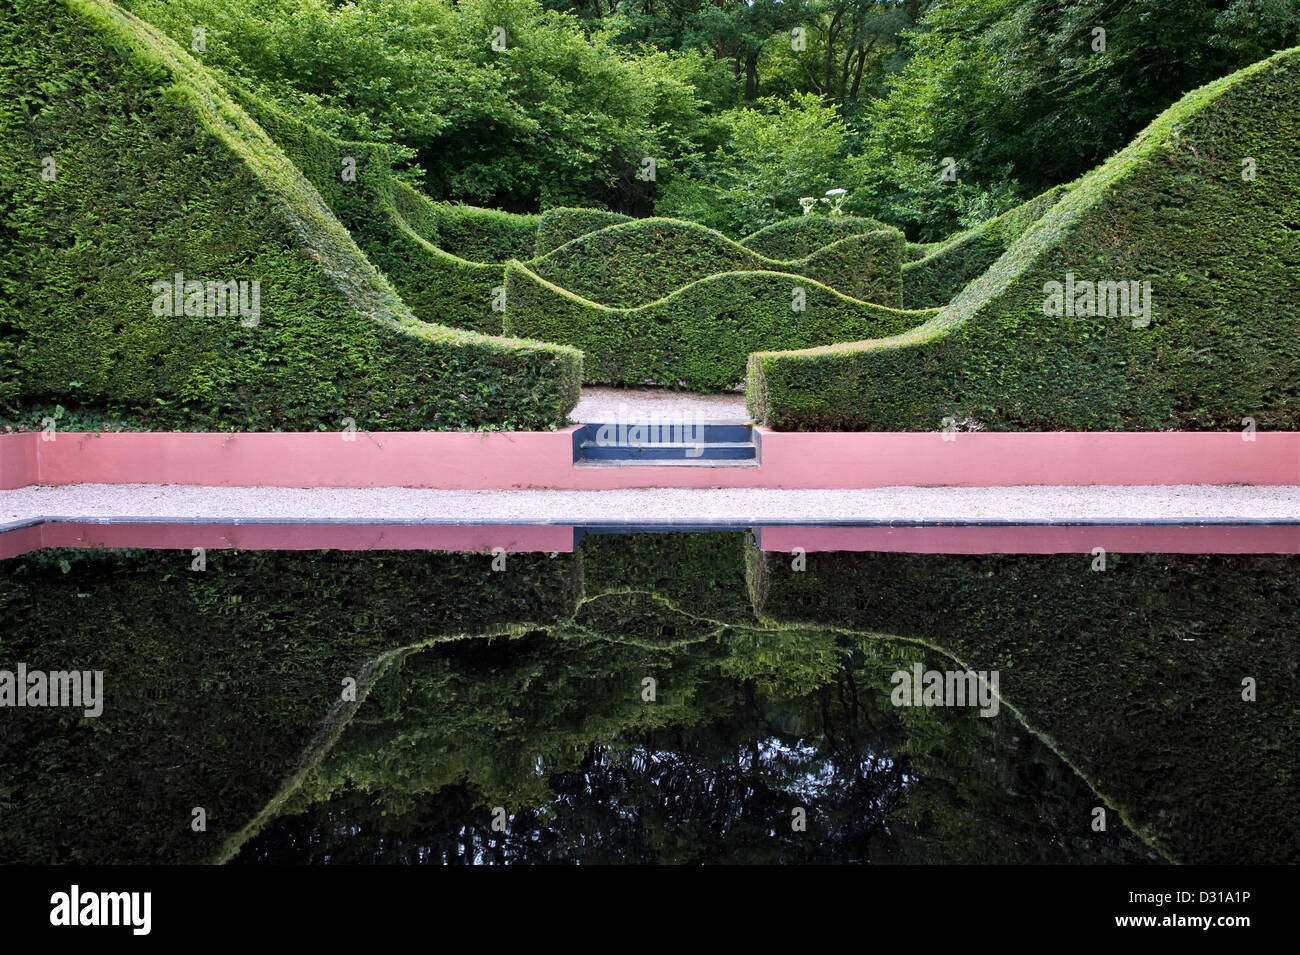 Veddw House Garden, Devauden, Wales, UK. A modern romantic garden made by Anne Wareham and Charles Hawes - Stock Image